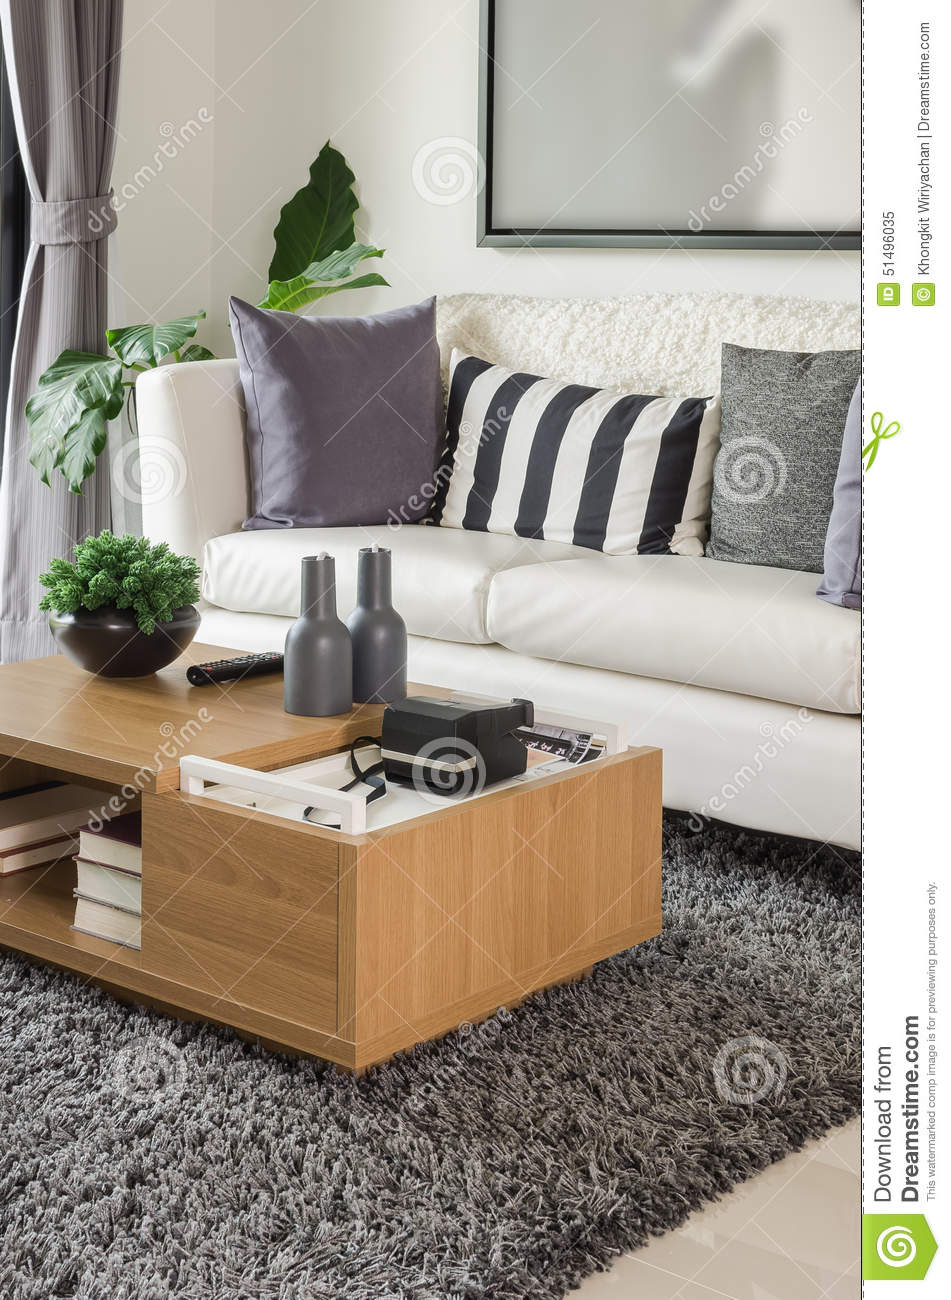 Sofa blanc avec la table en bois dans le salon moderne photo stock ...